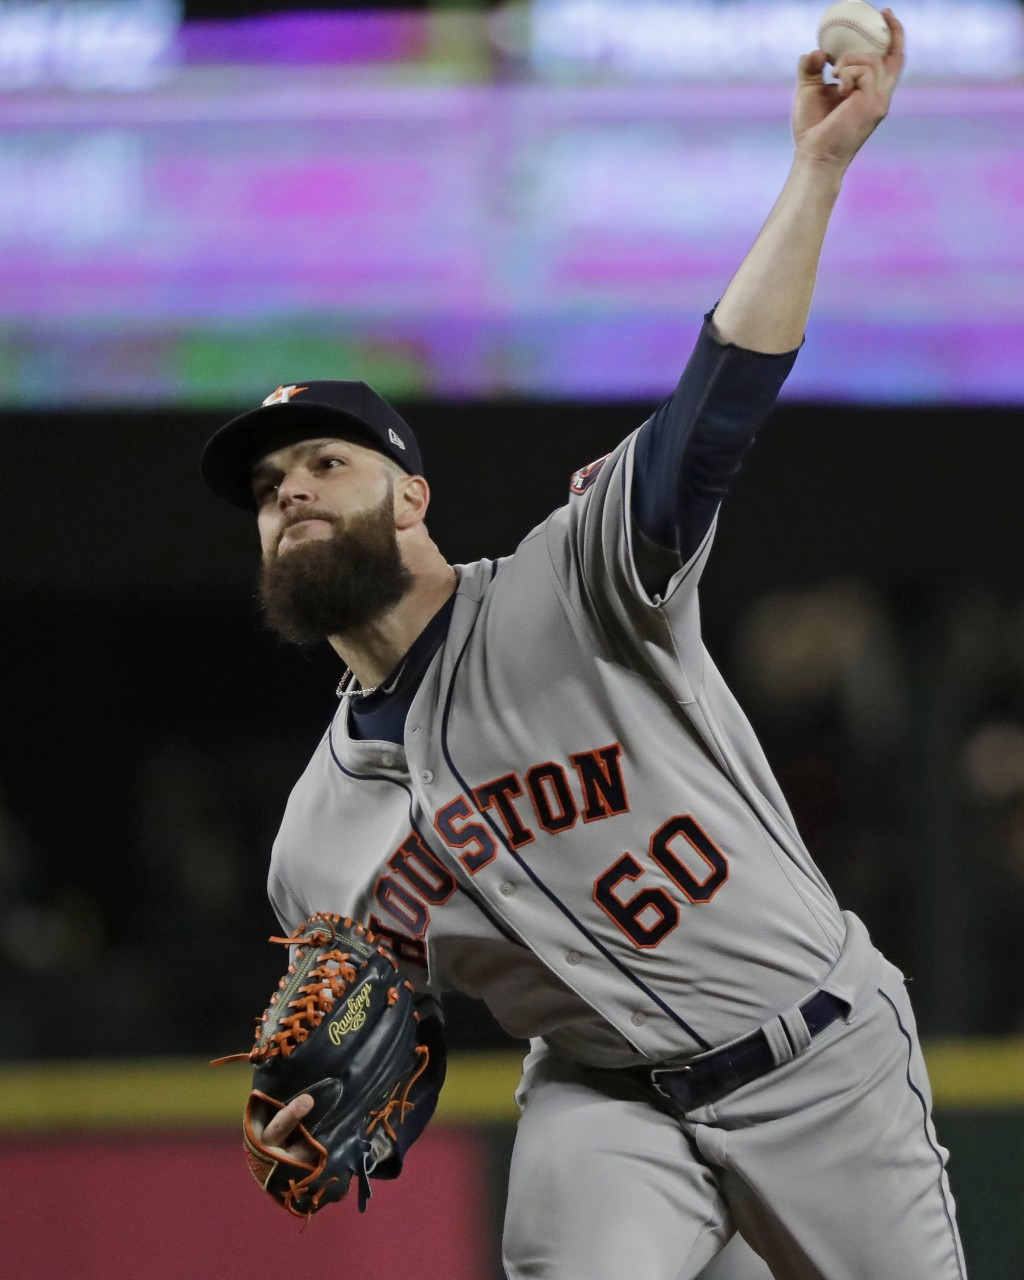 Houston Astros starting pitcher Dallas Keuchel throws against the Seattle Mariners during the fourth inning of a baseball game, Monday, April 16, 2018